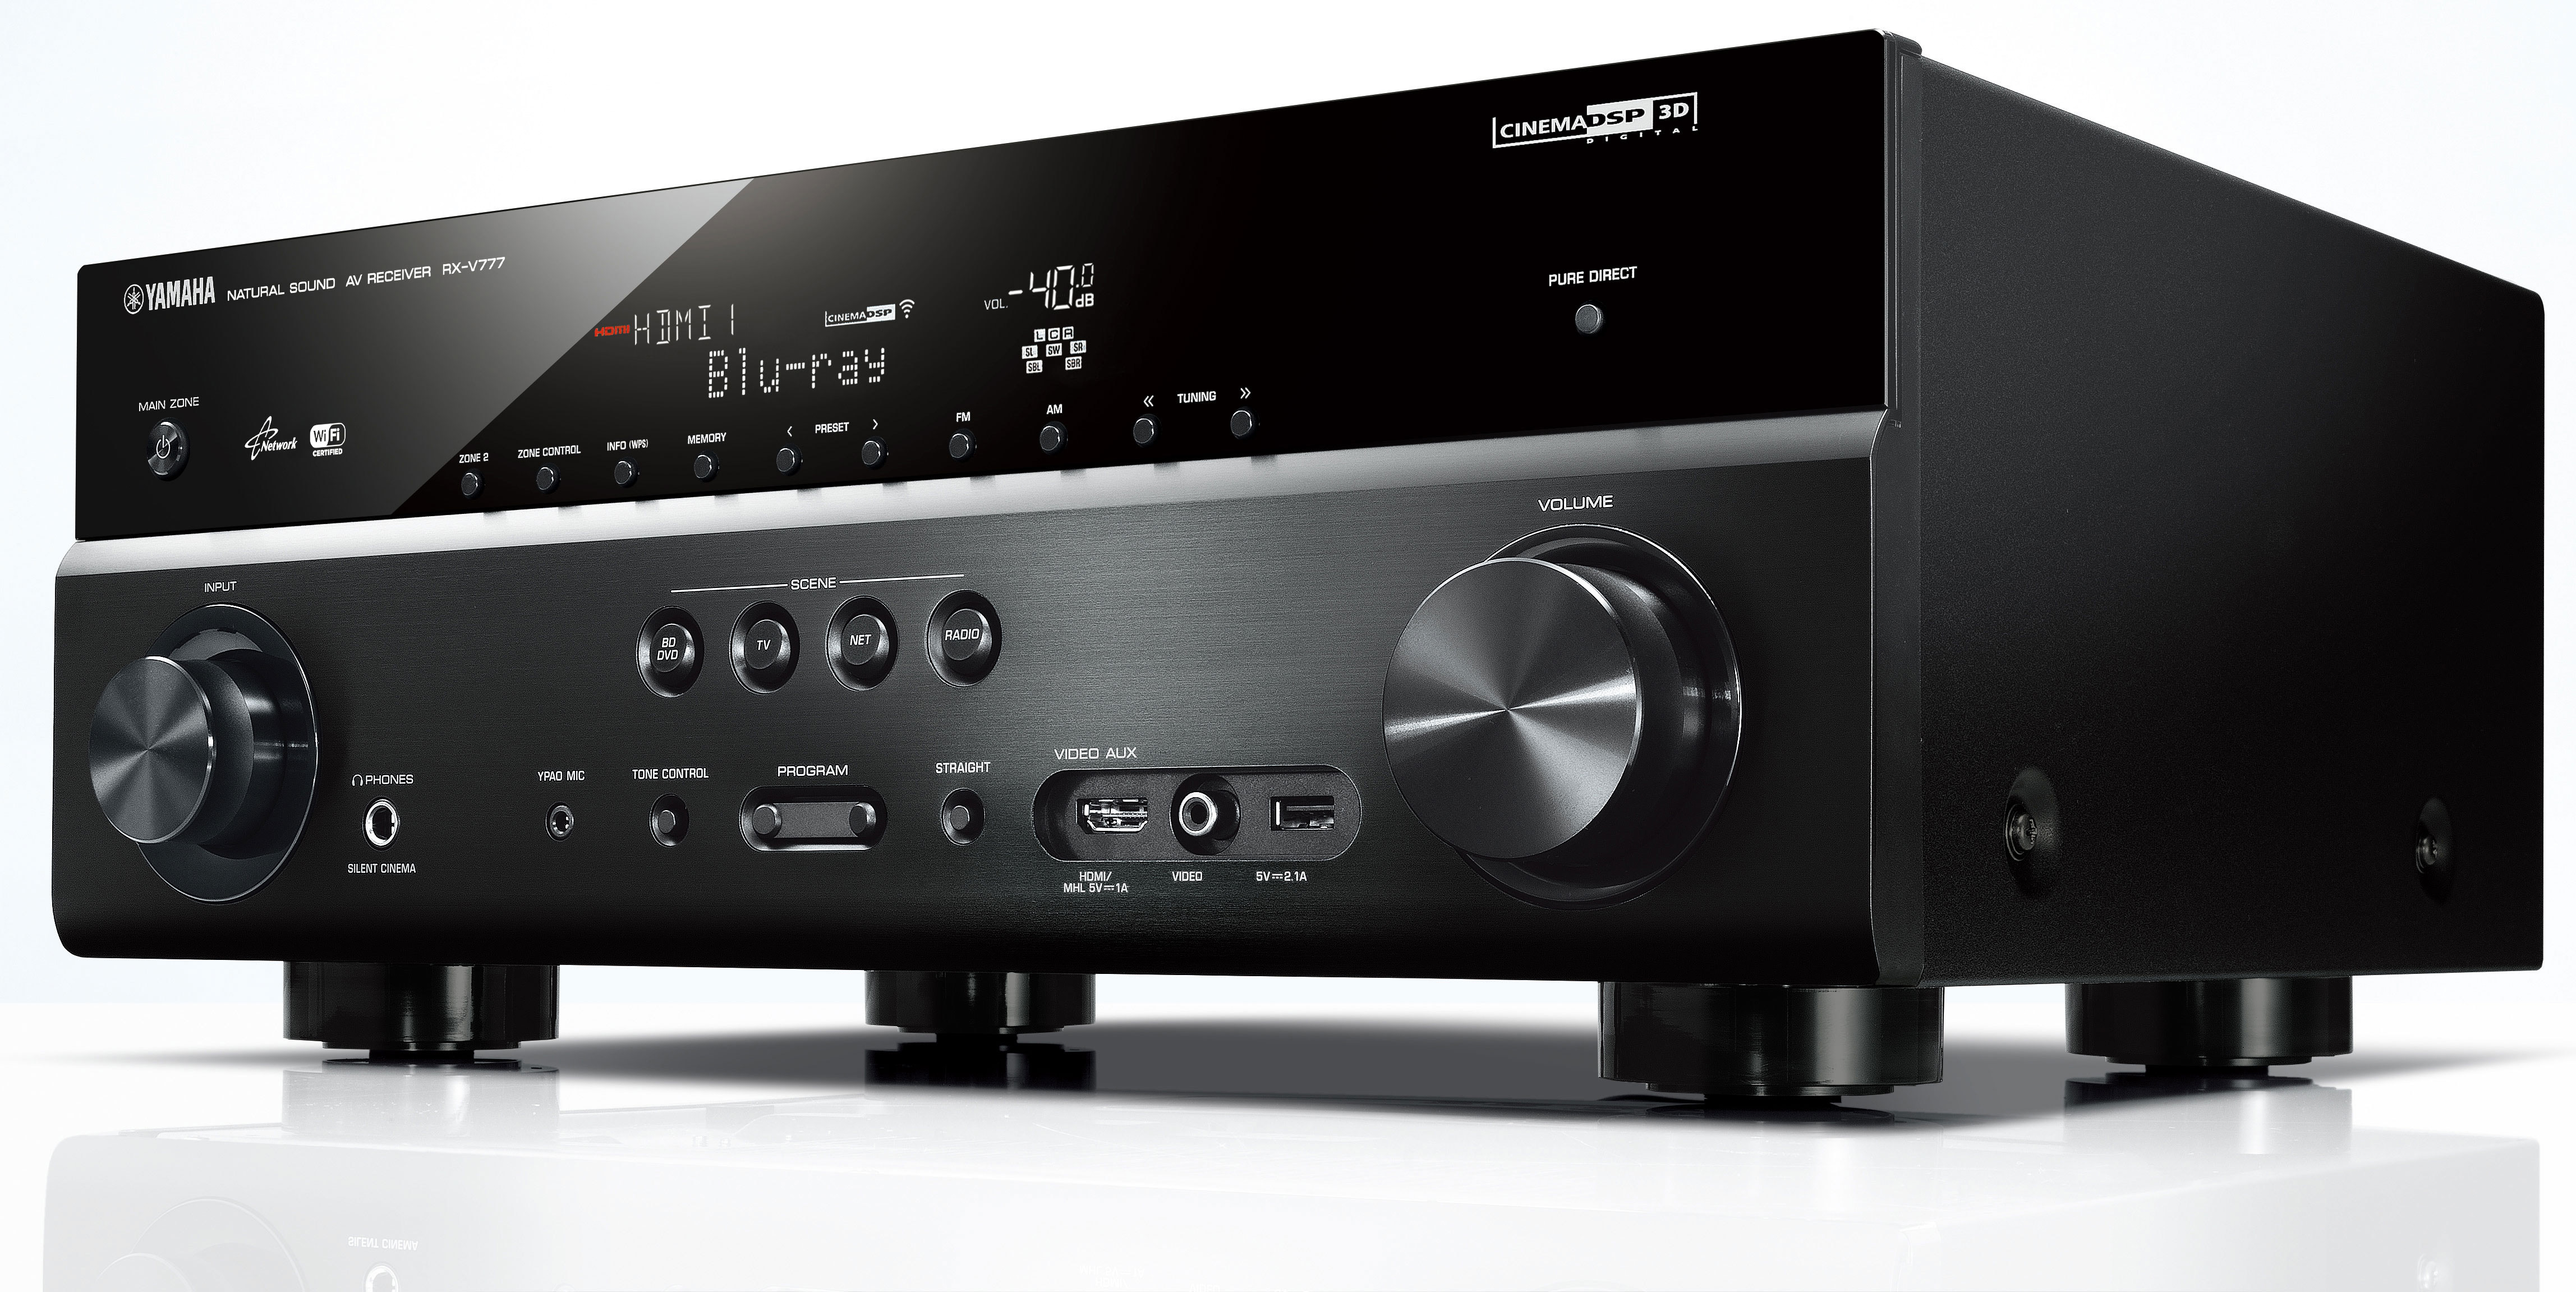 Yamaha 5.1-Channel 4K Network AV Receiver with Airplay $273 shipped (Reg. $350)